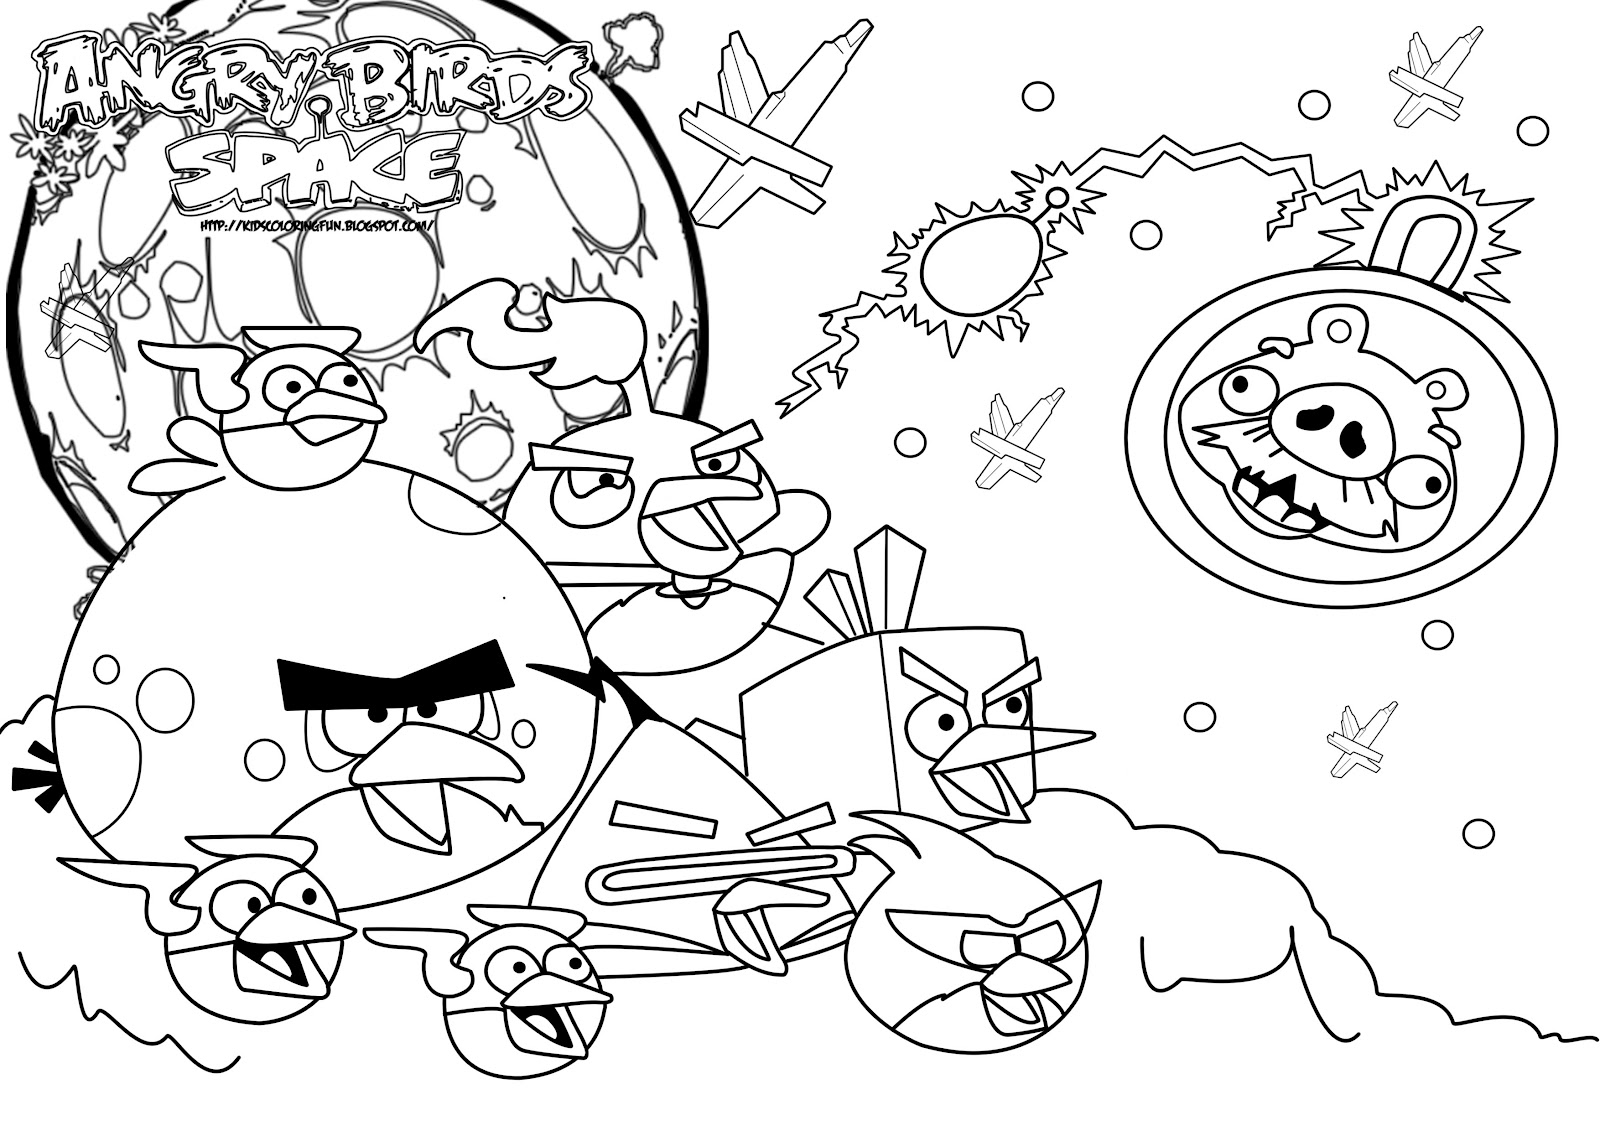 angry birds go coloring pages angry birds star wars for print and color coloring pages coloring pages birds go angry